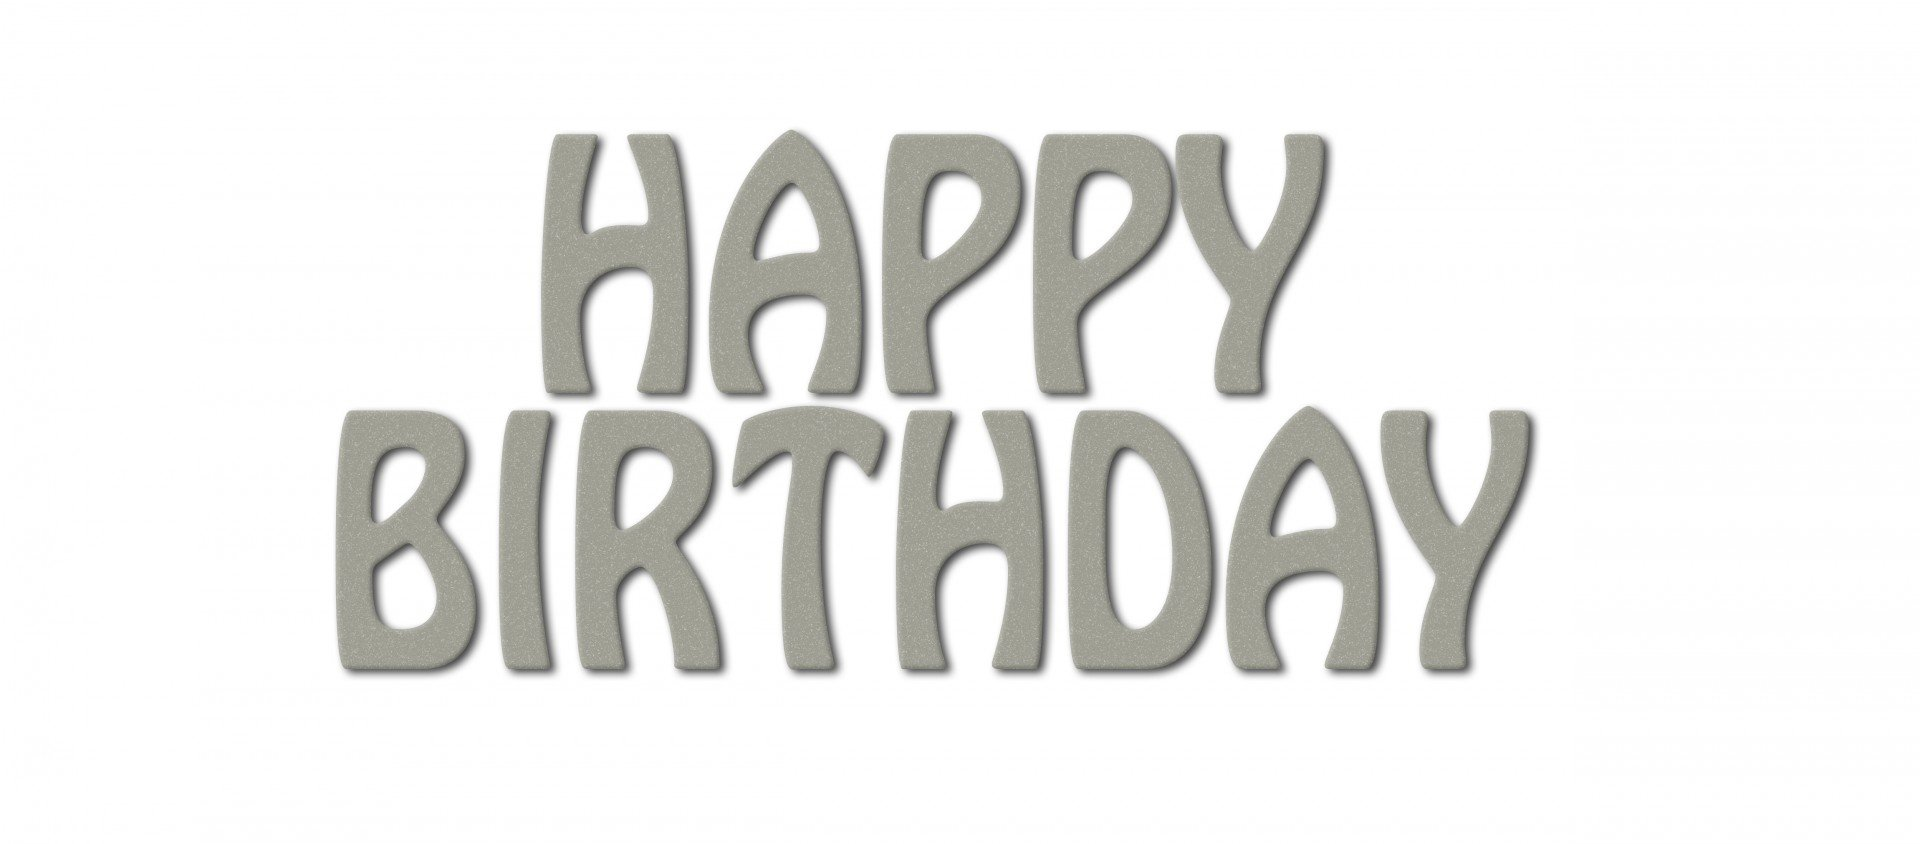 Home Comforts LAMINATED POSTER Happy Birthday Text Illustrations Poster Print 24 x 36 by Home Comforts